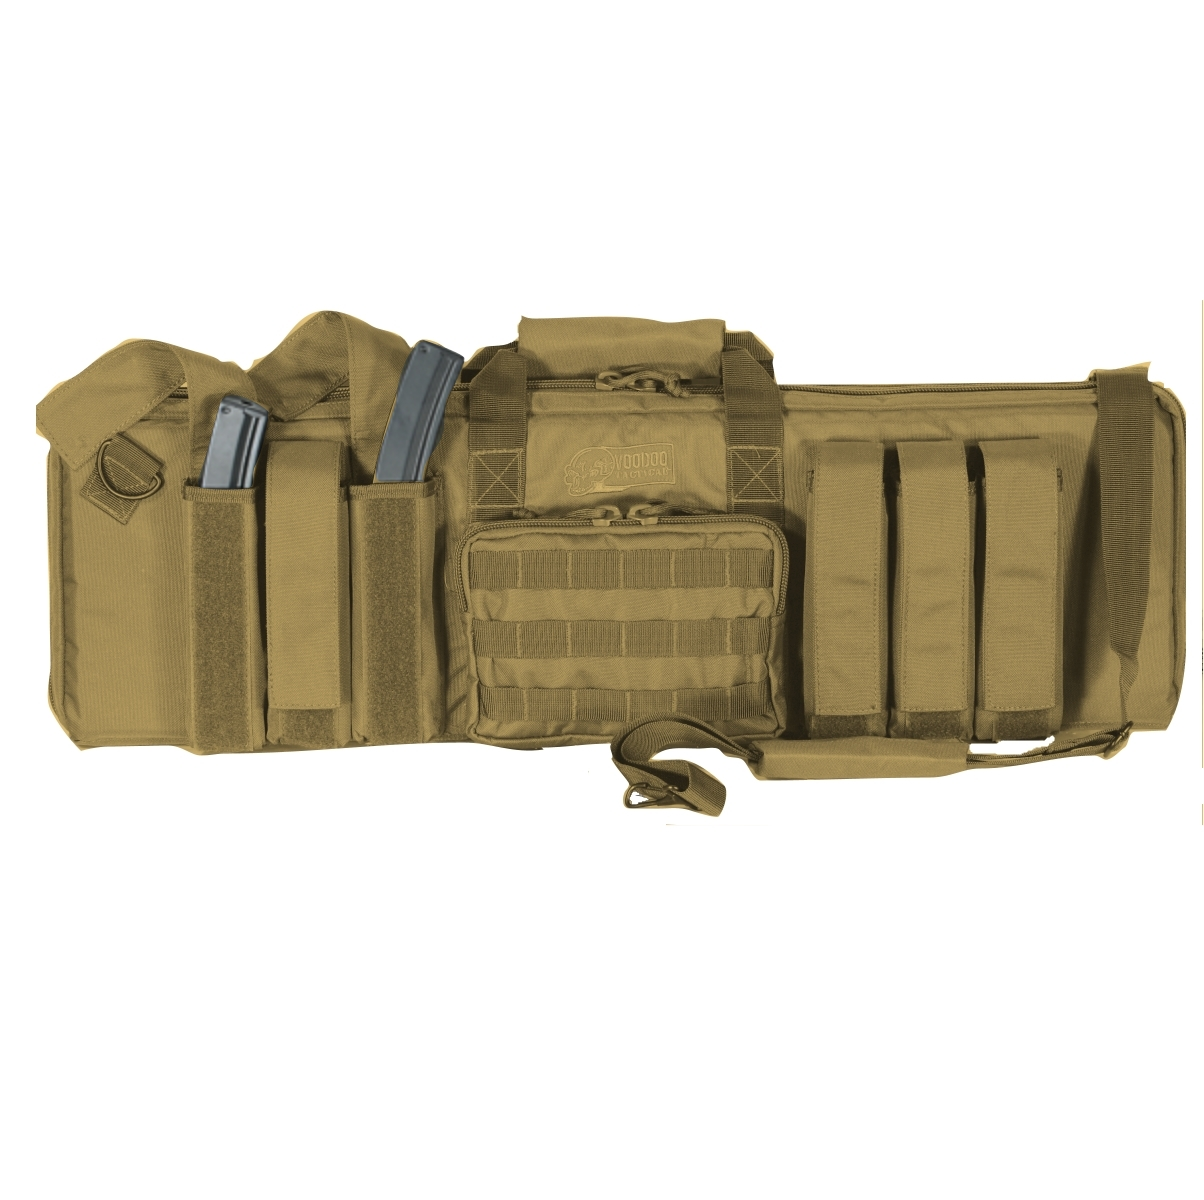 Voodoo Tactical 15-9658 MP5 30-Inch Subgun Padded Weapons Case, Coyote Tan at Sears.com